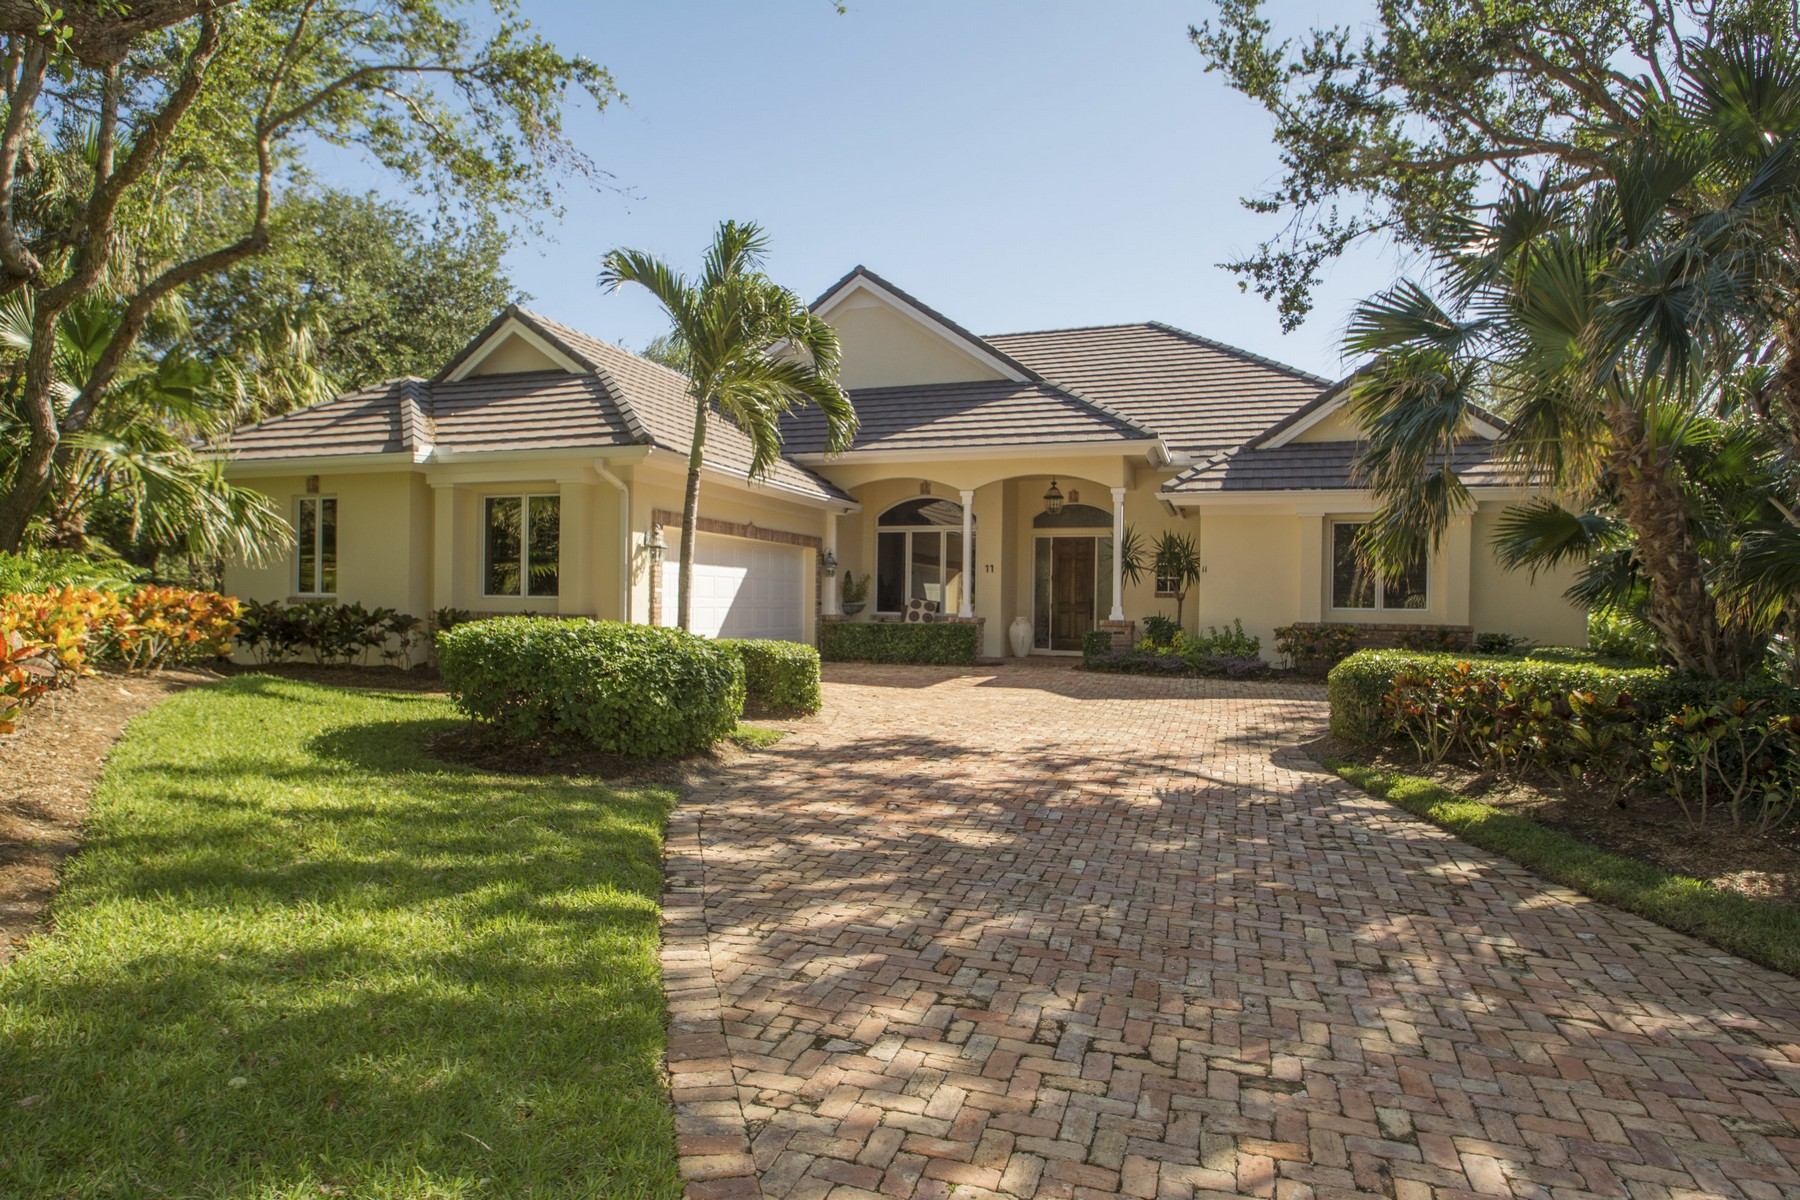 Magnificent Home with Exquisite Landscaping 11 S. White Jewel Court Indian River Shores, Florida 32963 Stati Uniti